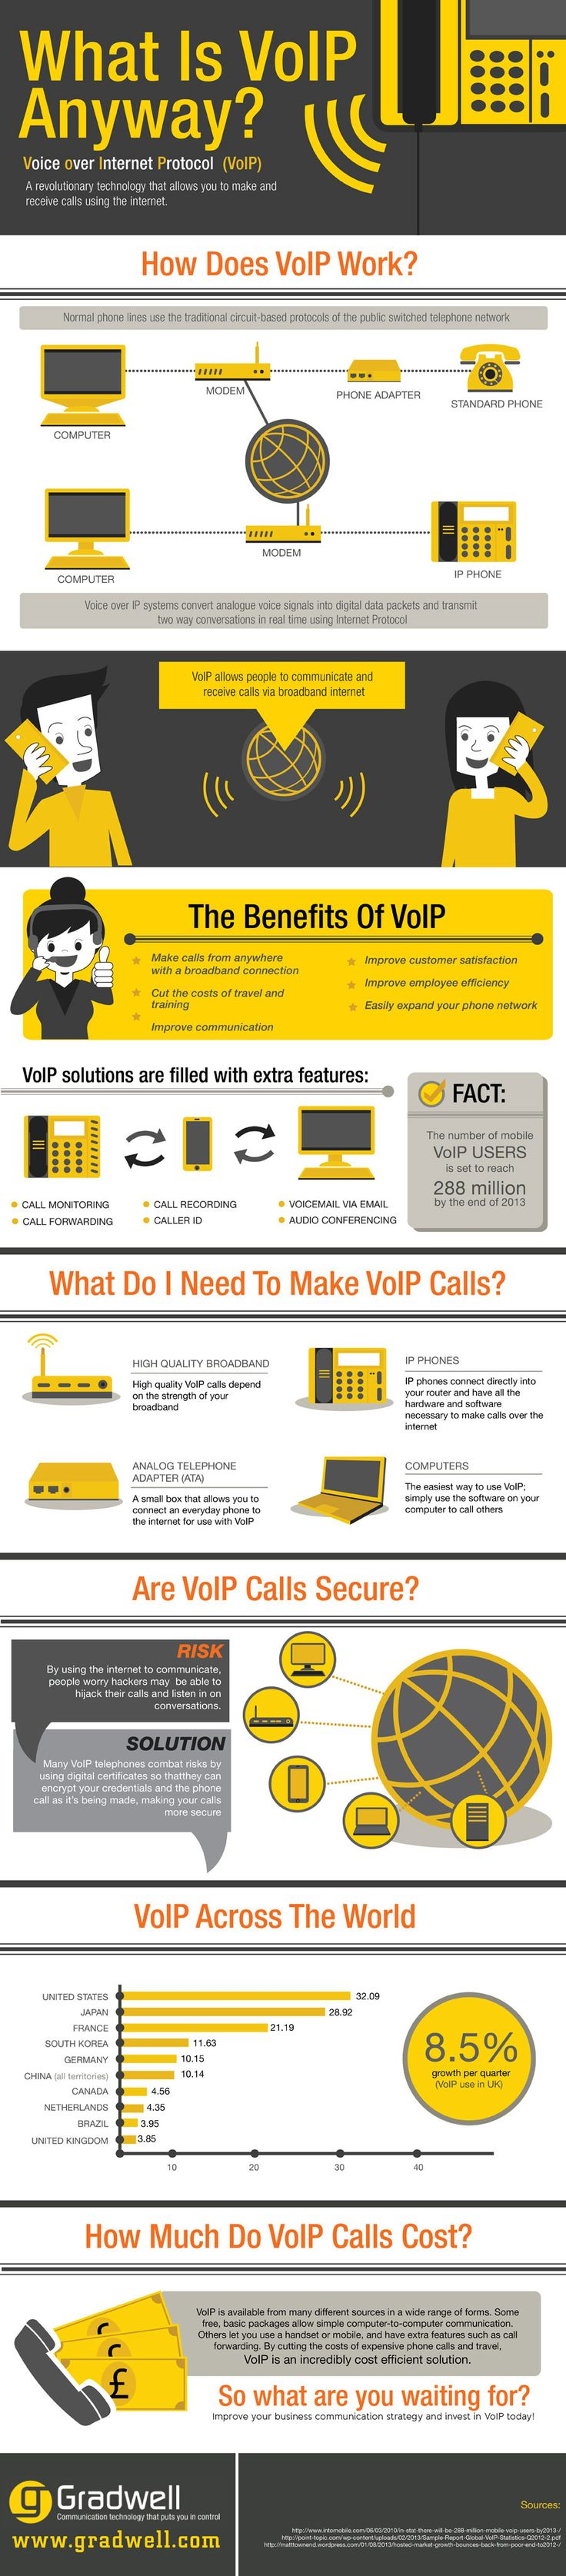 What Is VoIP Anyway?  #Infographic #Technology #Cloud